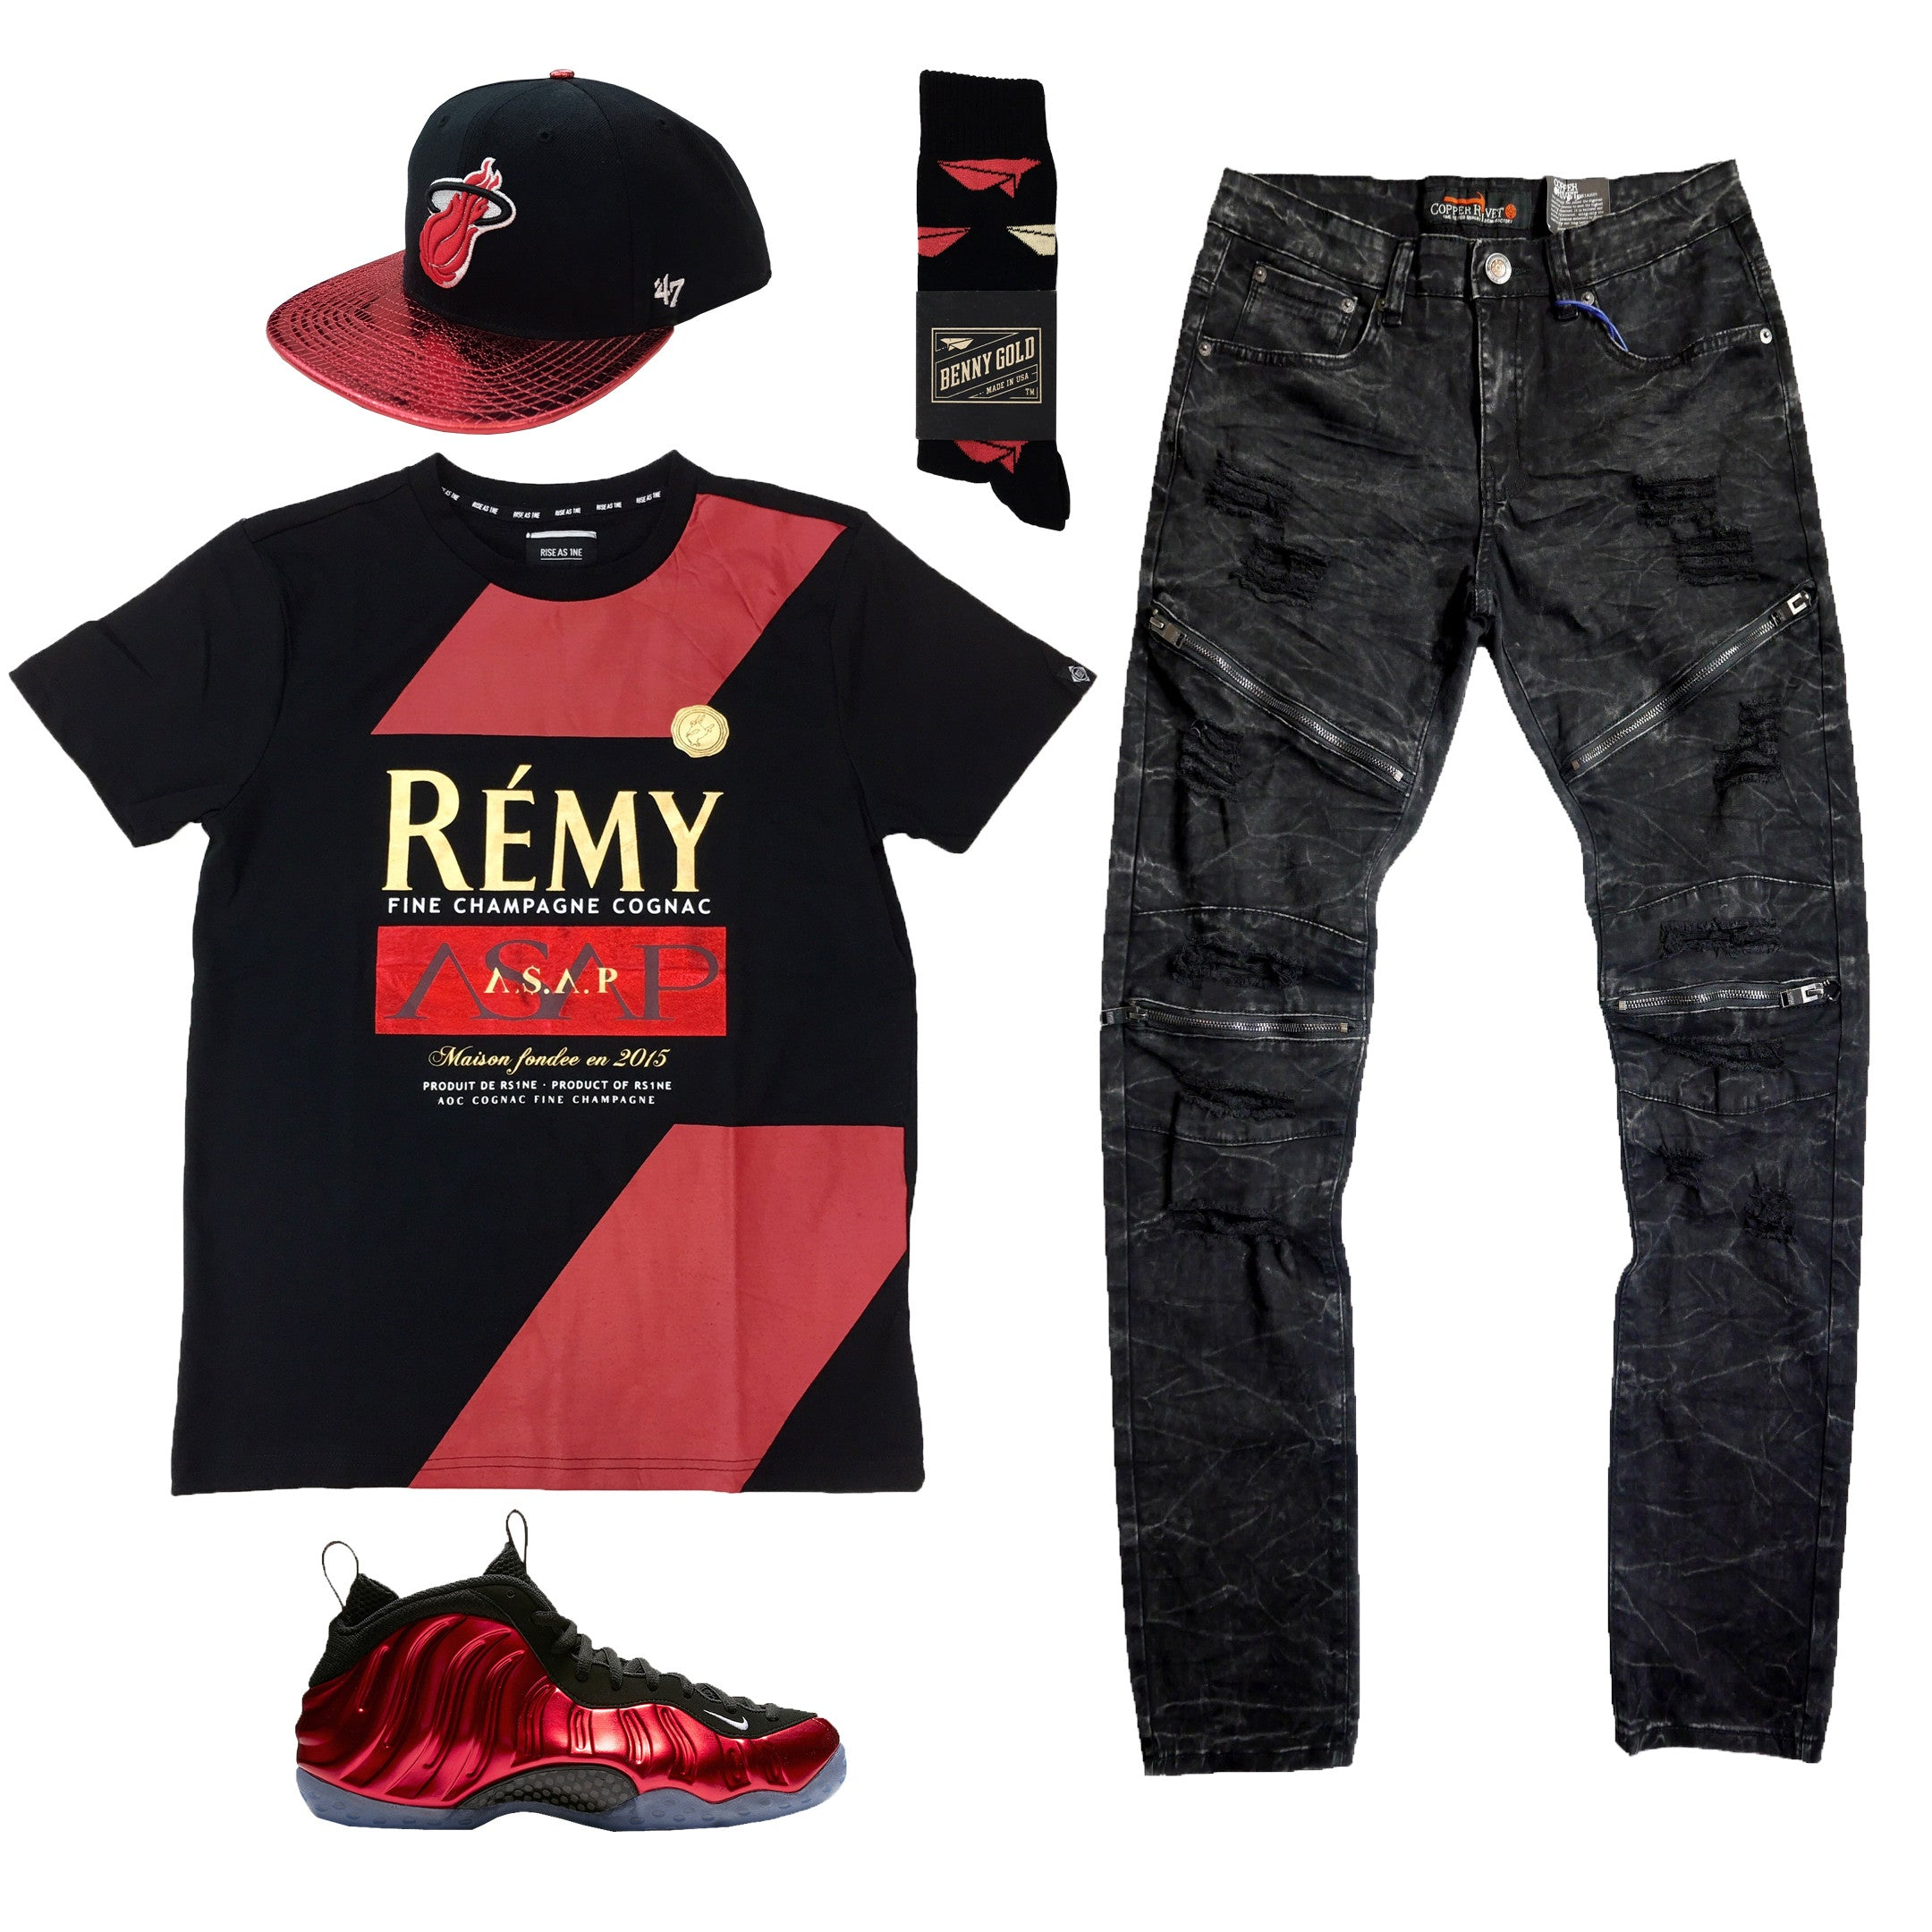 00a5caac682d4 Nike Foamposite One Metallic Red Outfit8.00 USDHat